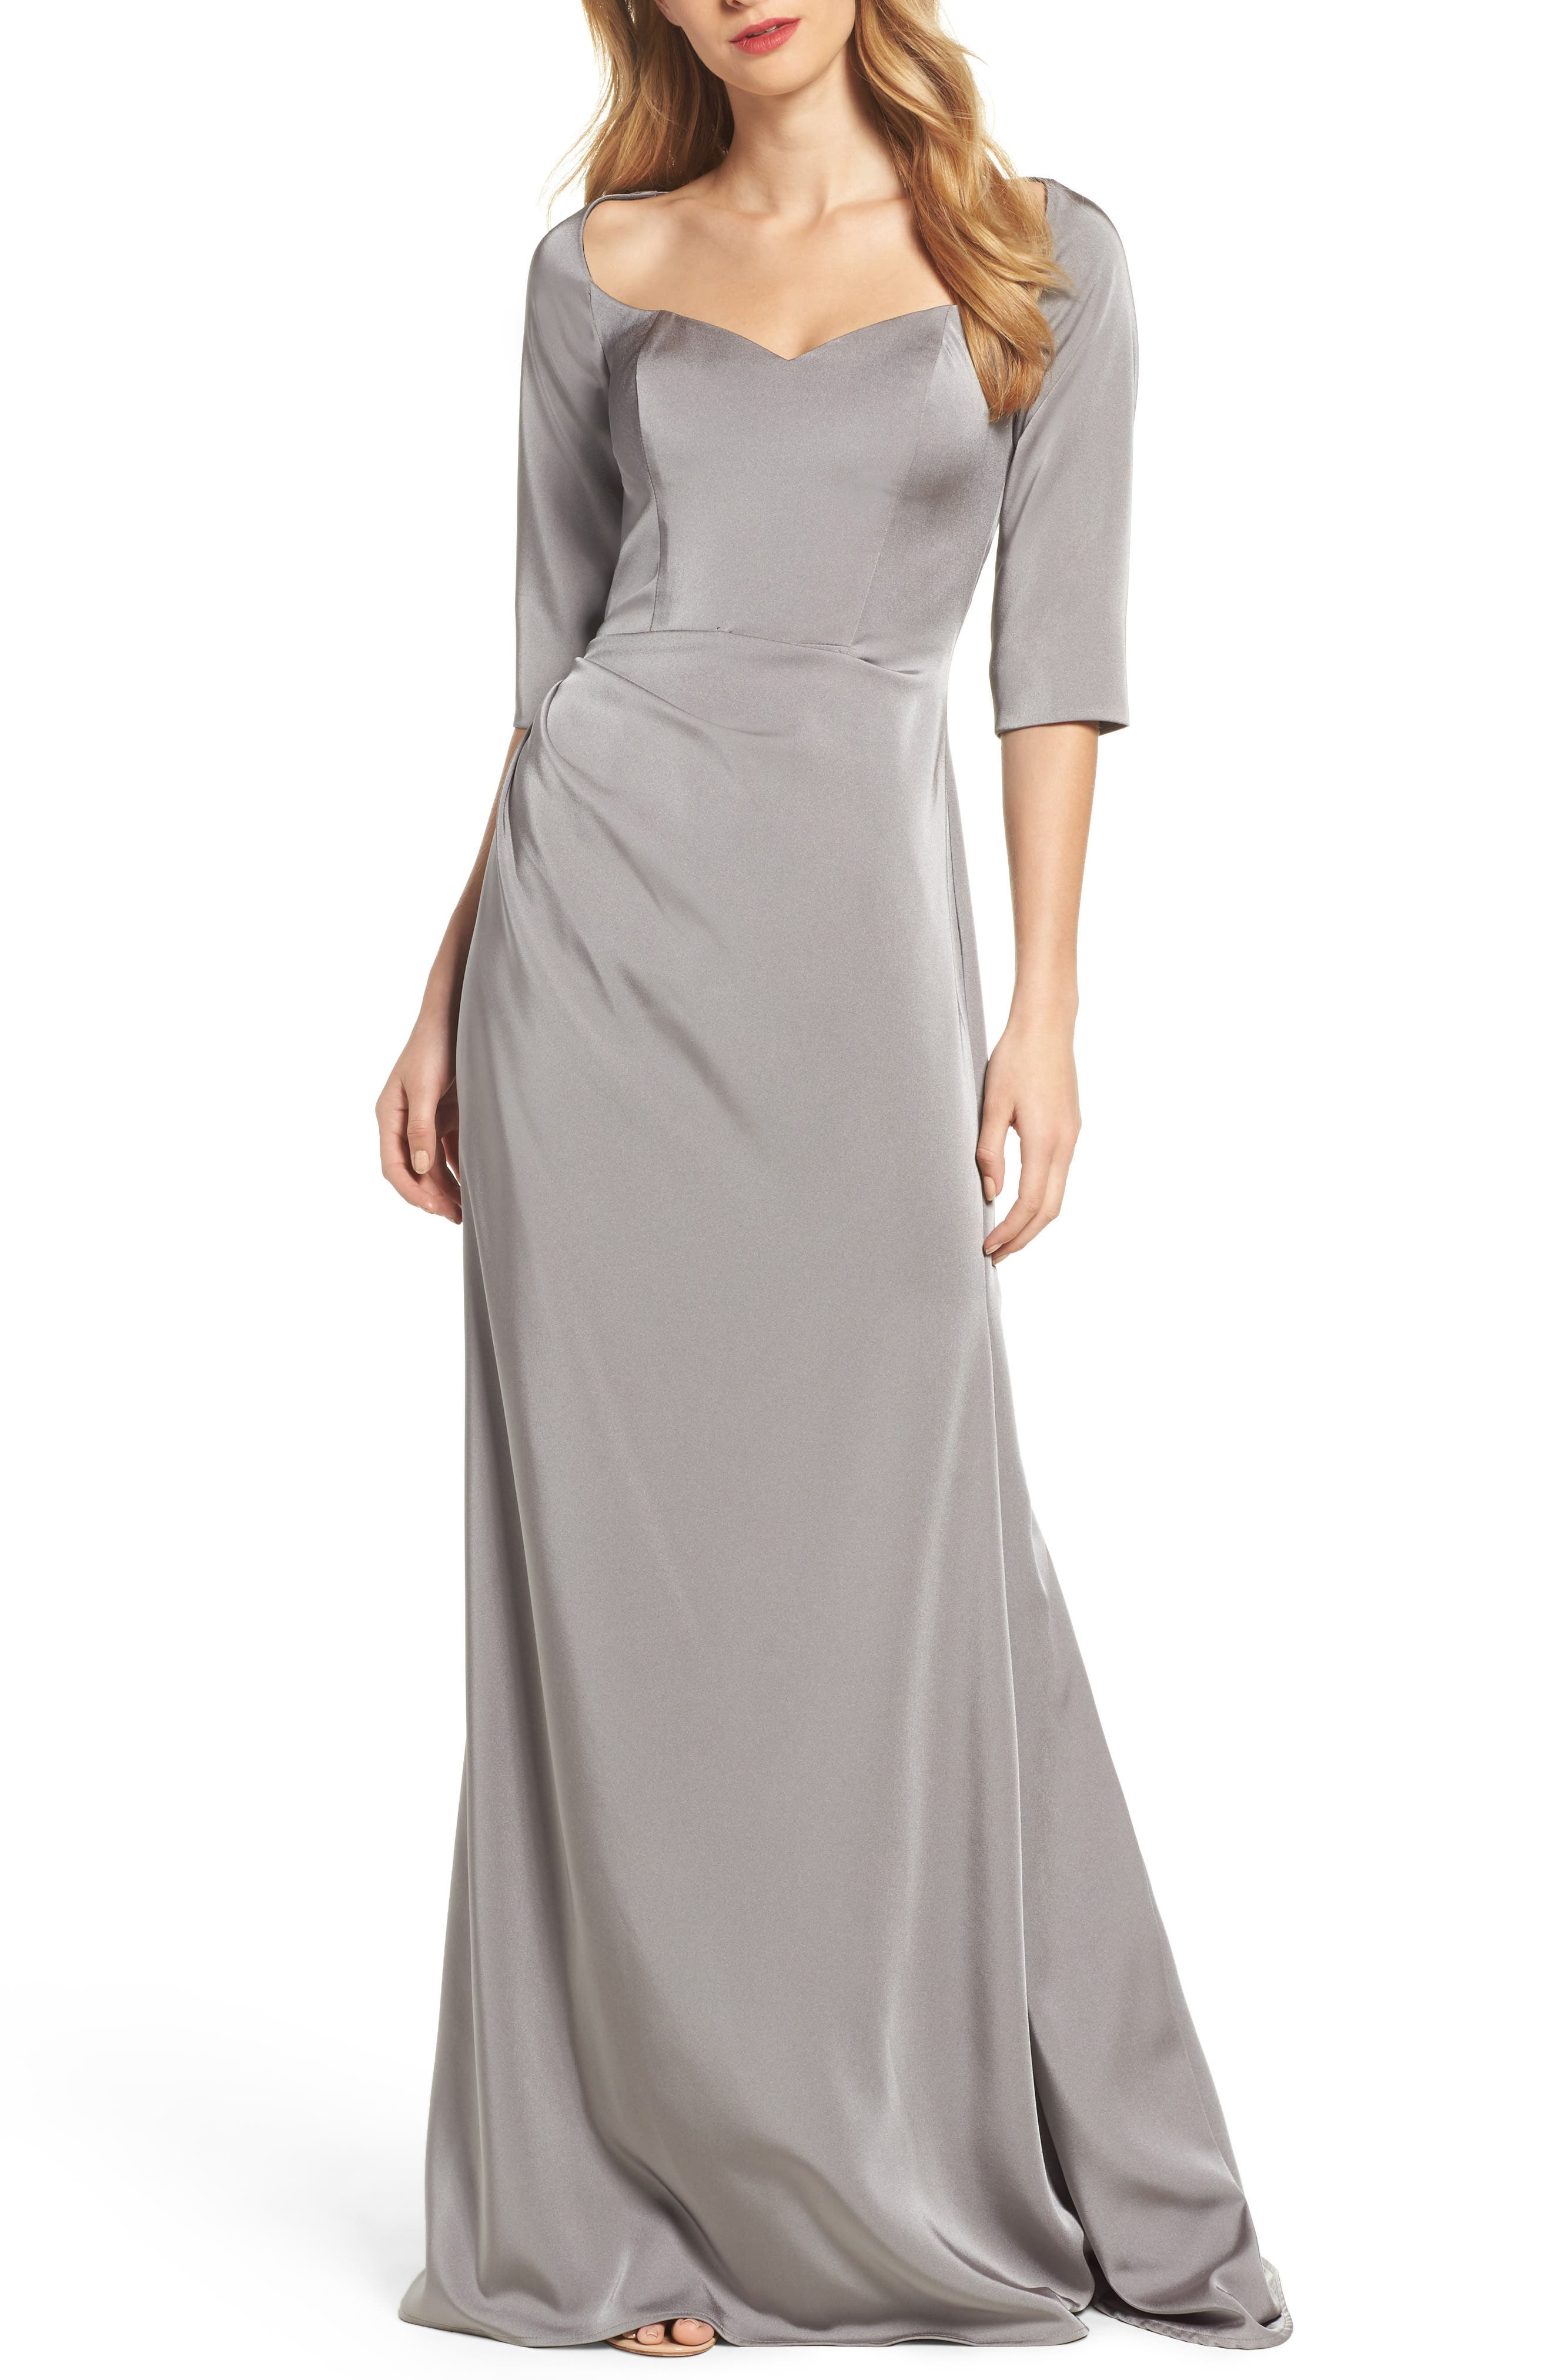 LA FEMME, Sweetheart Satin Gown, Main thumbnail 1, color, PLATINUM